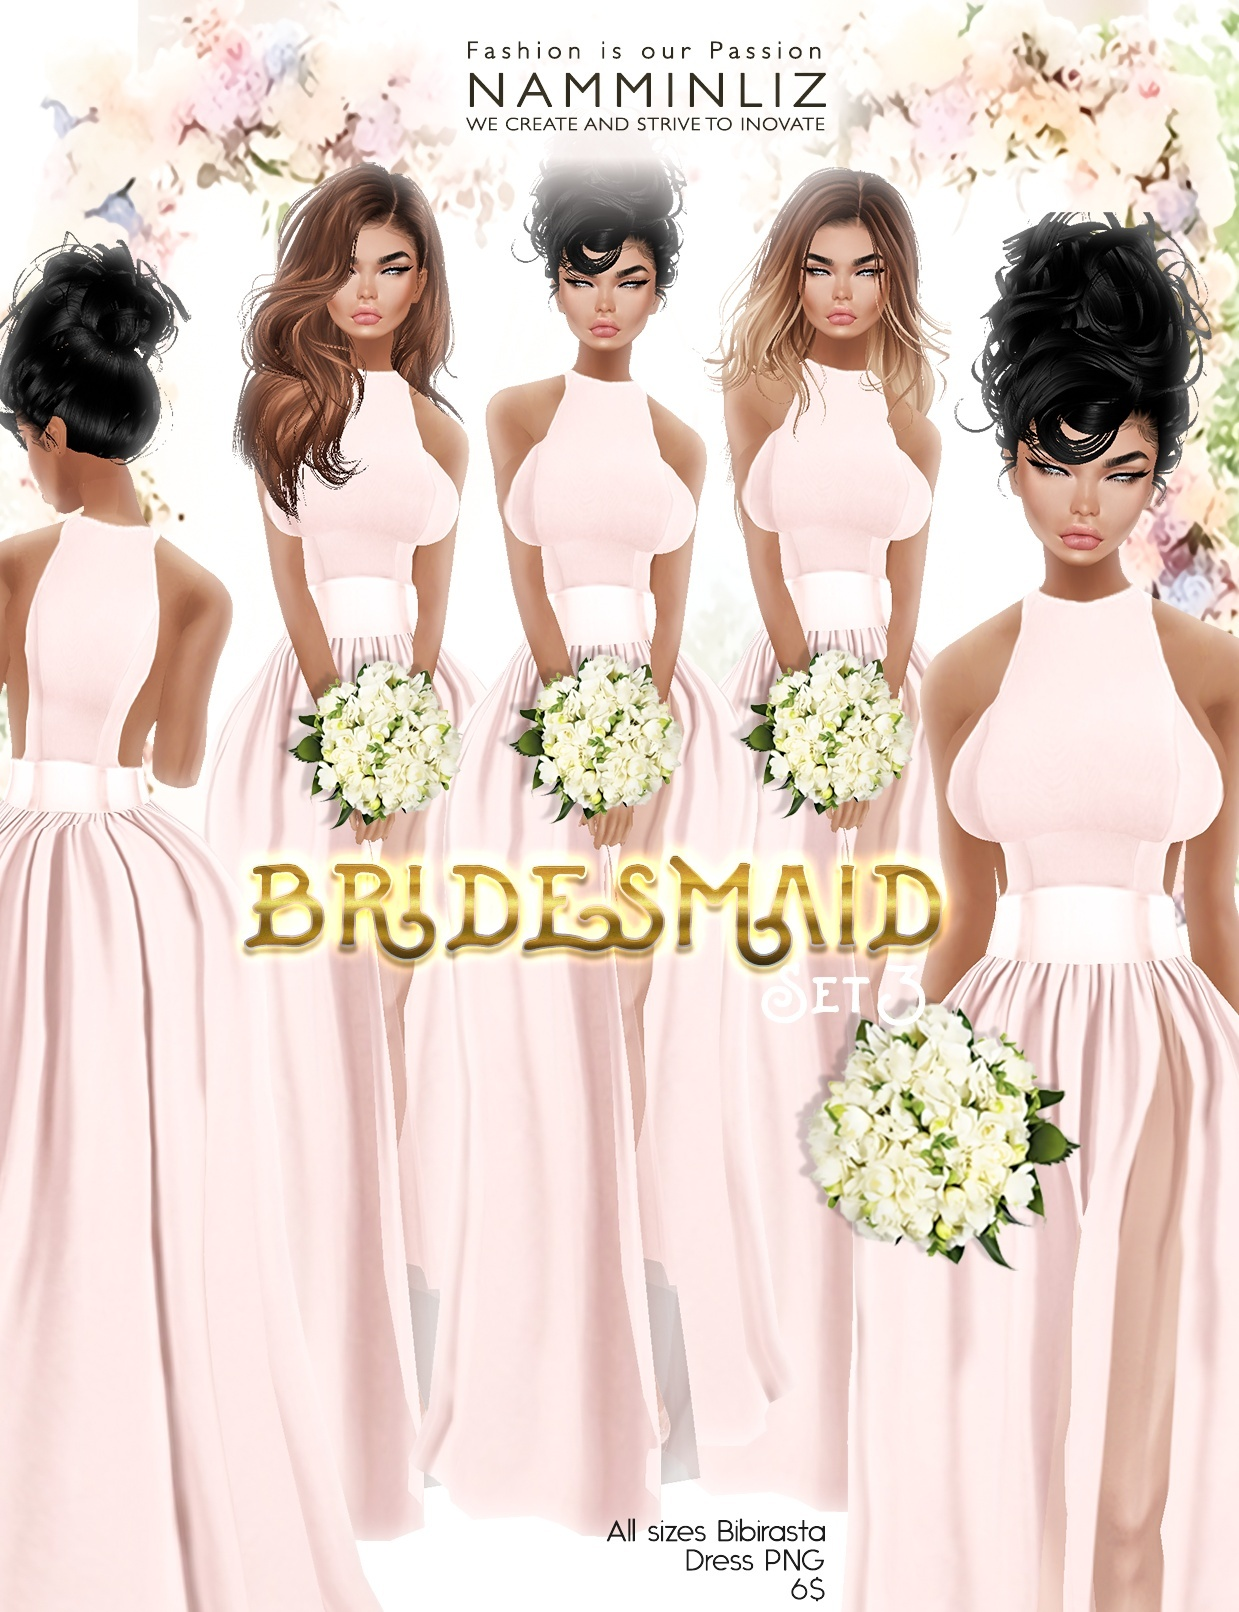 Bridesmaid set3 imvu Bibirasta dress all sizes PNG